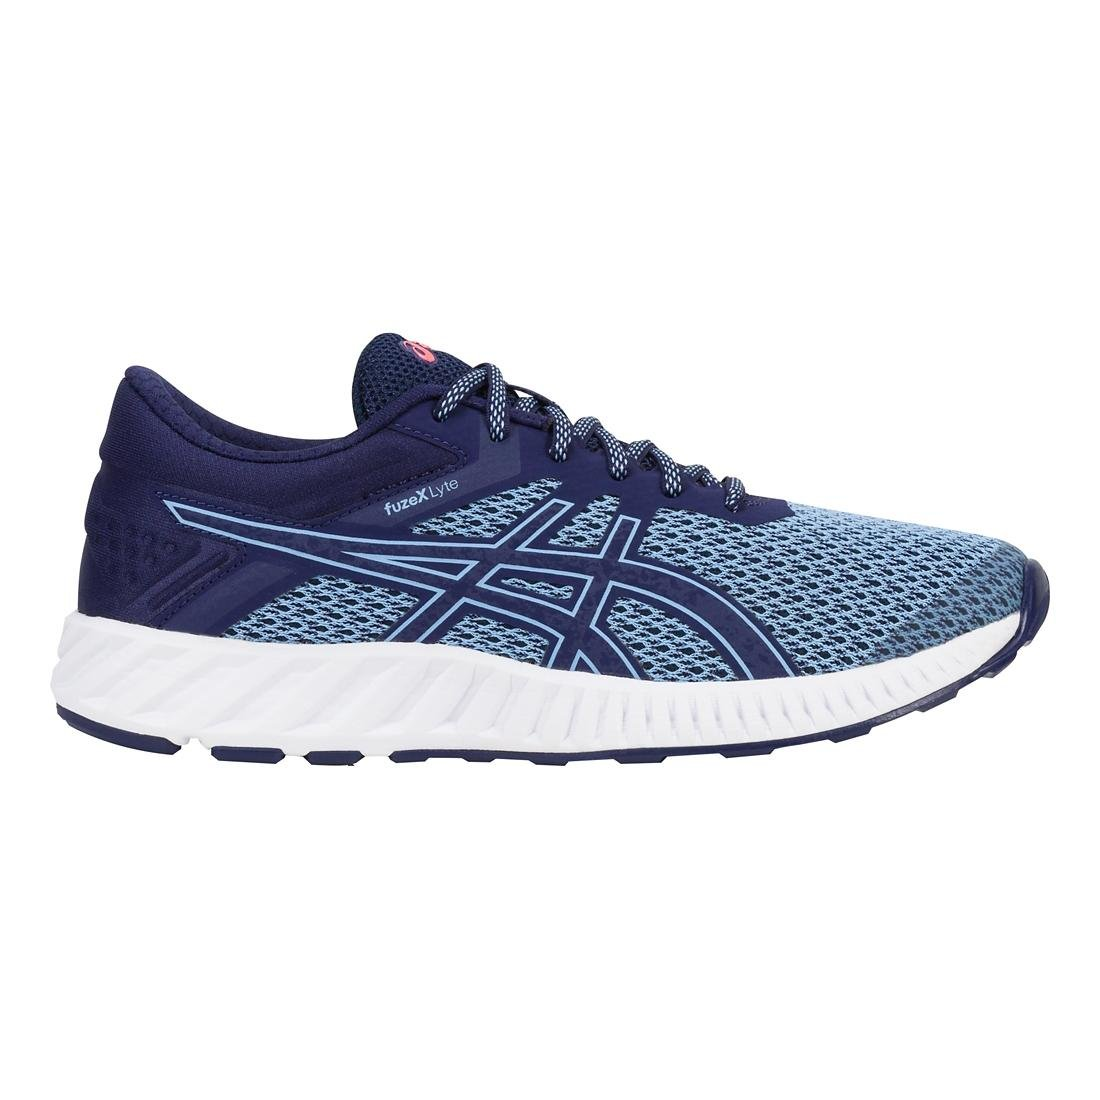 ASICS Women's Fuzex Lyte 2 Running Shoe B0761Y3PD6 6 B(M) US|Airy Blue/Astral Aura/Flash Coral